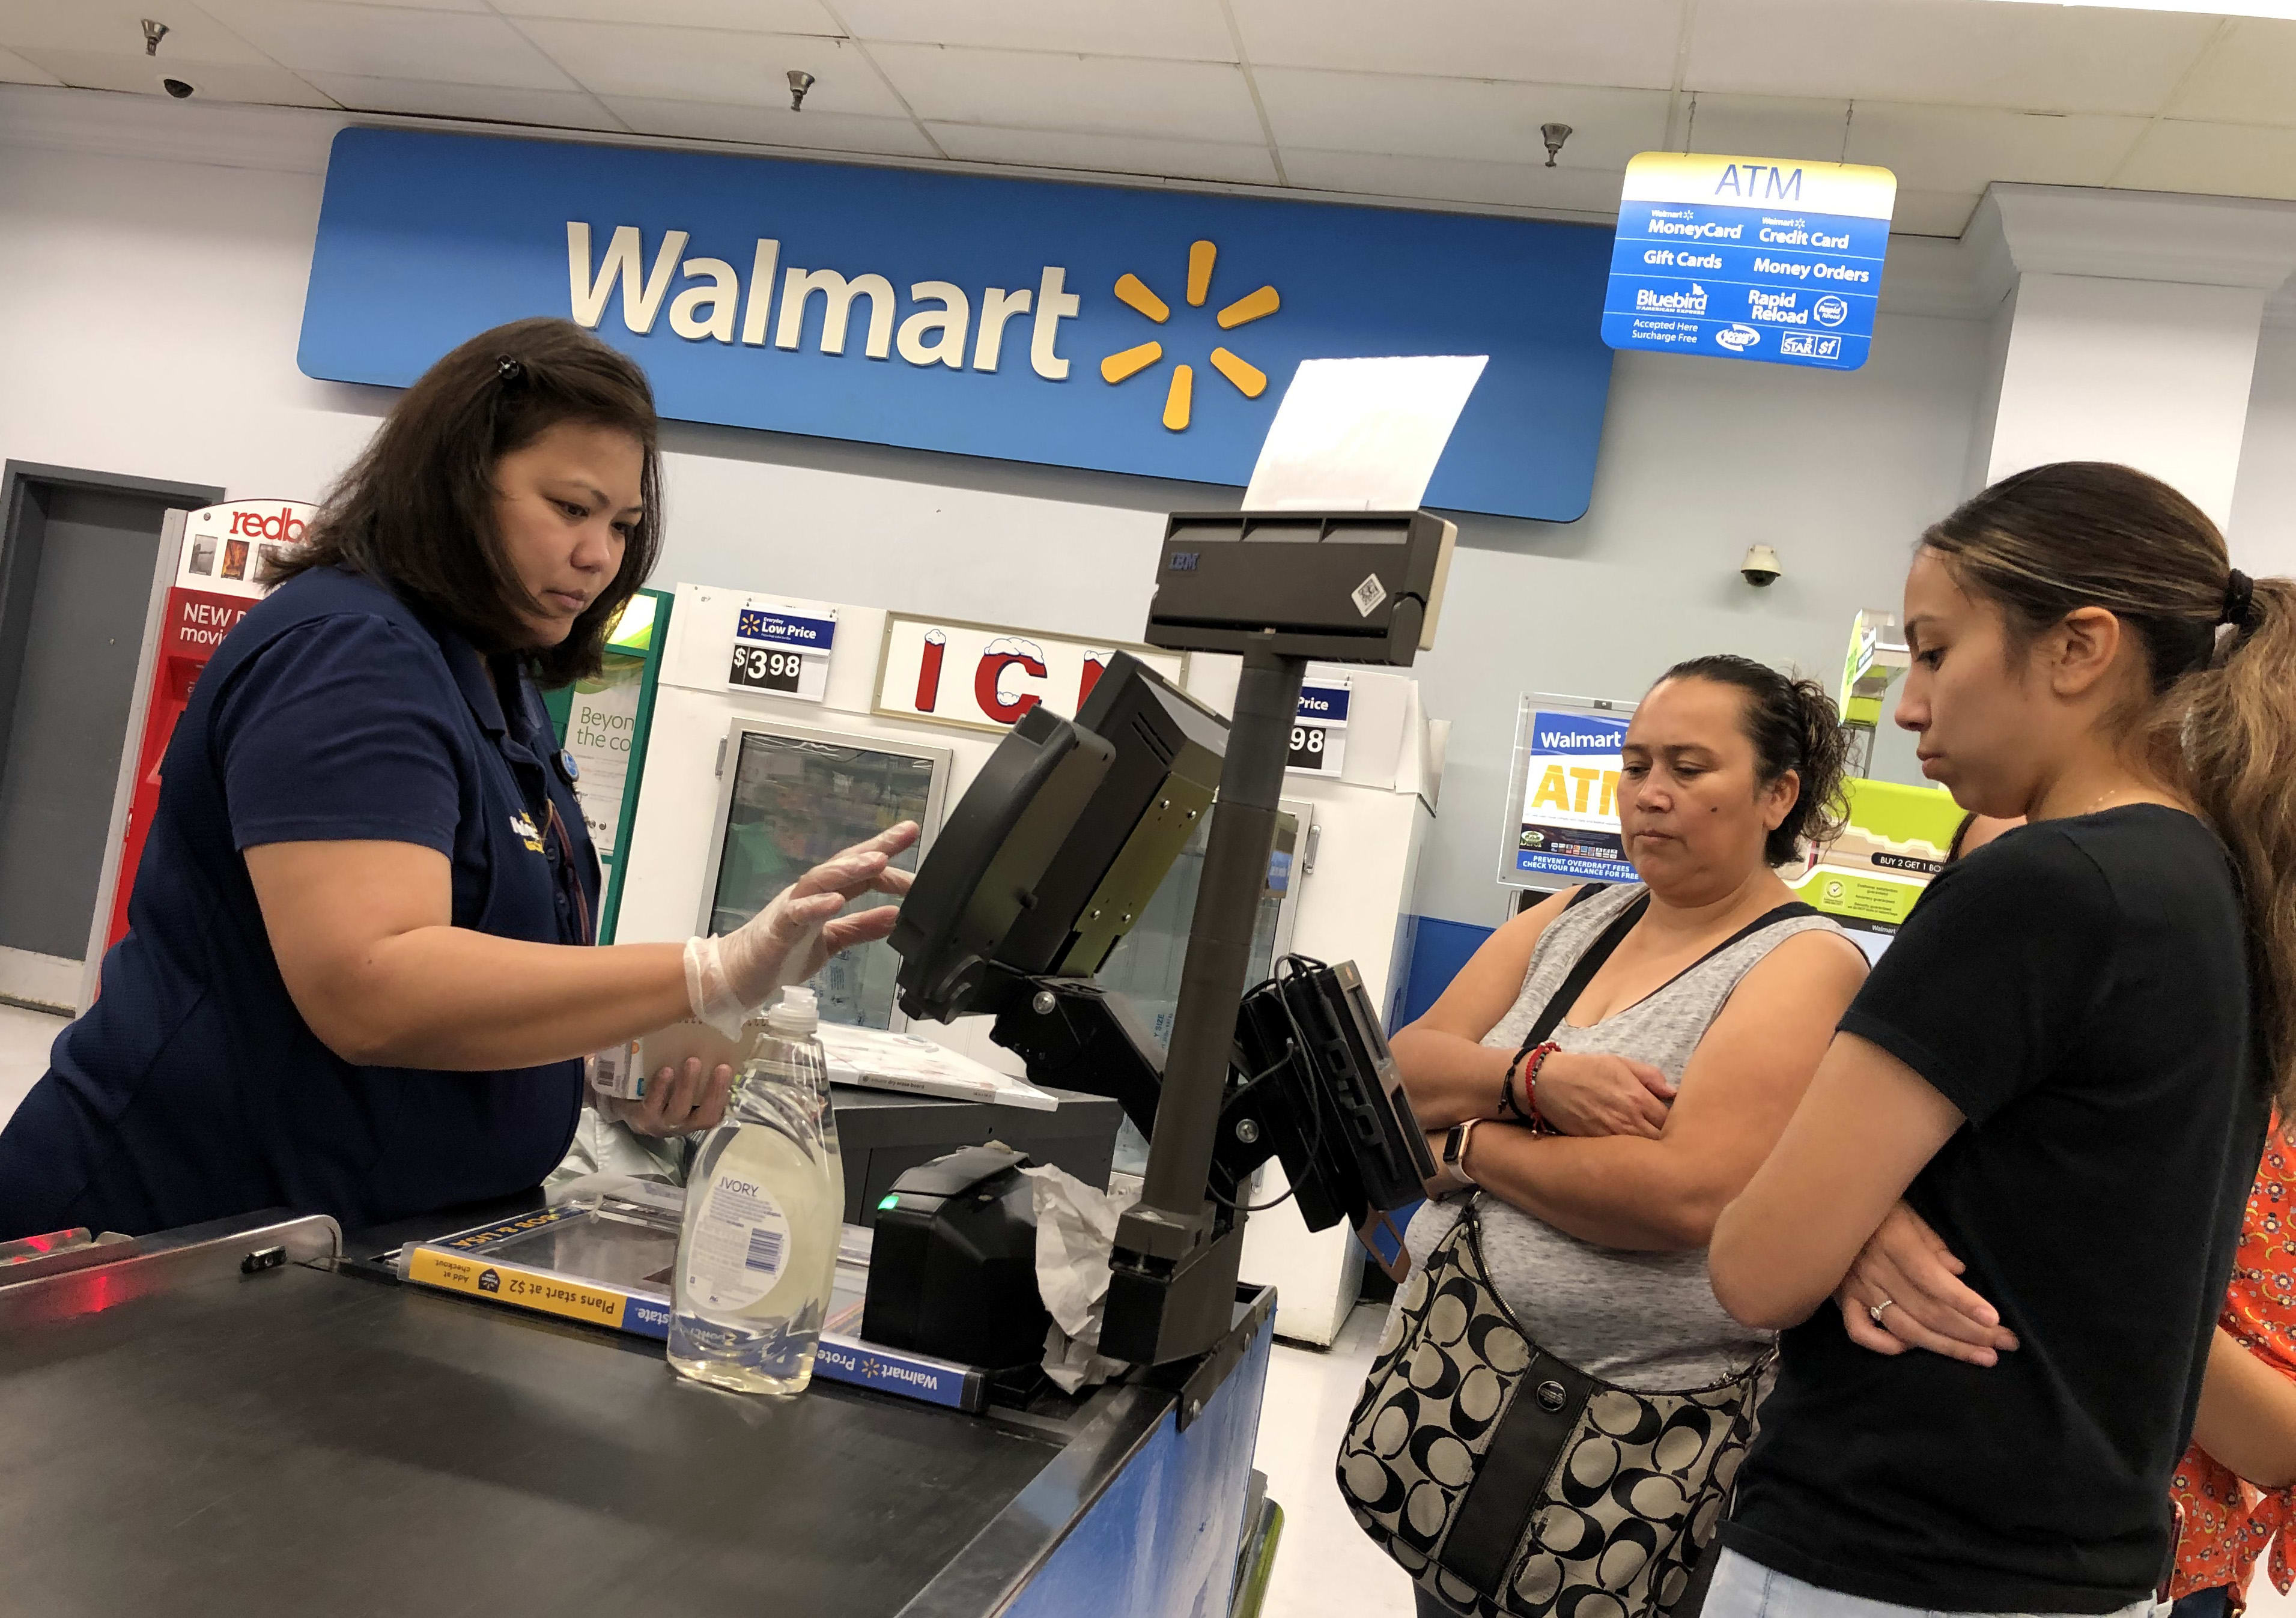 Walmart likely discriminated against female workers in stores, WSJ says